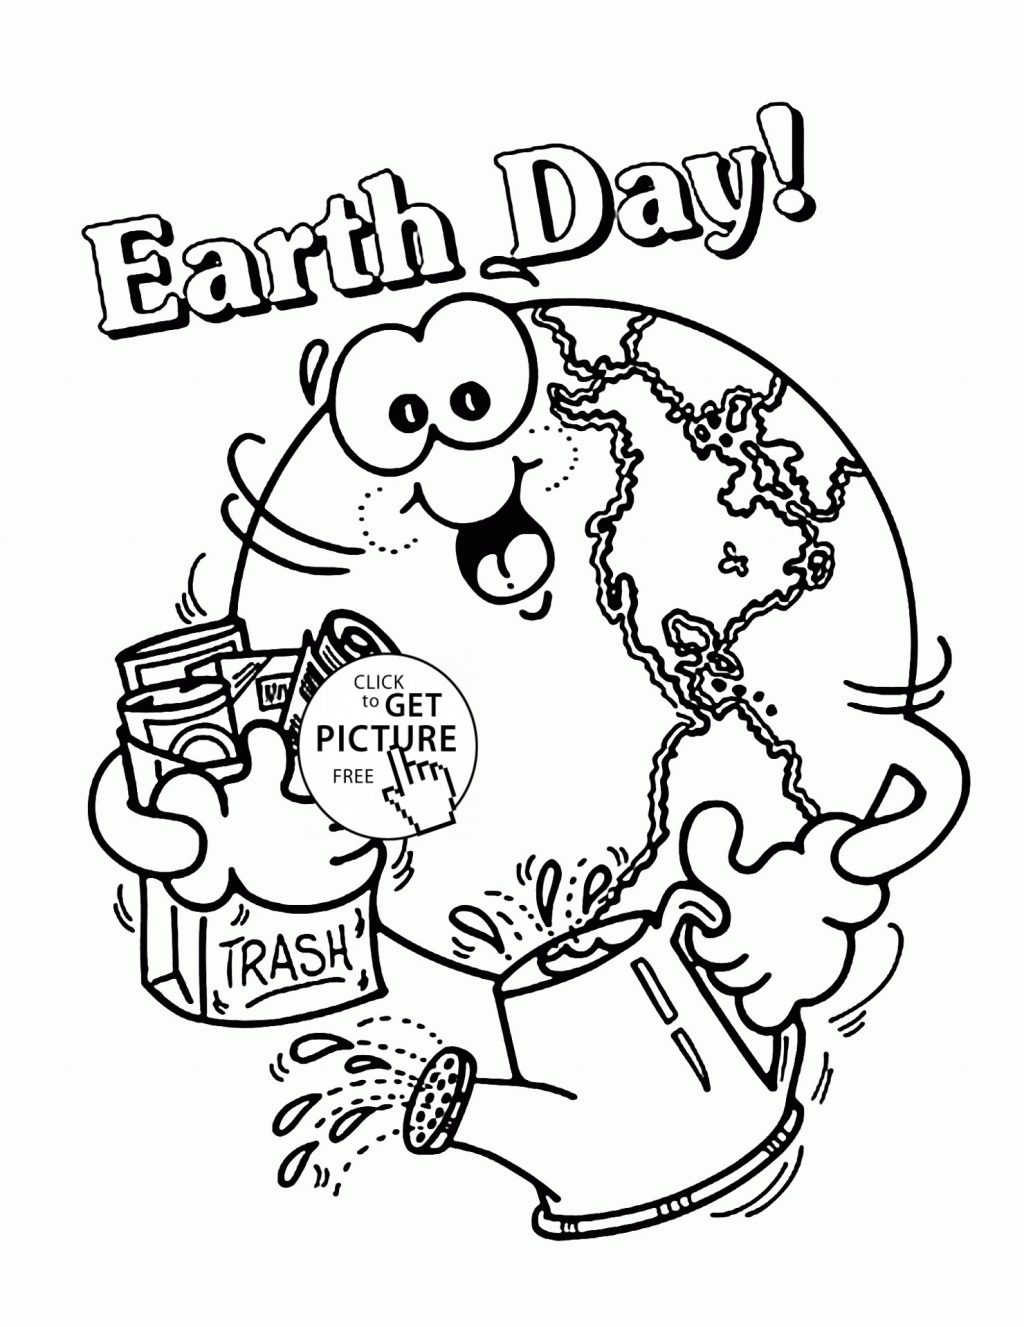 Free Printable Earth Day Coloring Pages And Activities Coloring Ideas Vibrant Inspiration Earth Day Coloring Pagesr